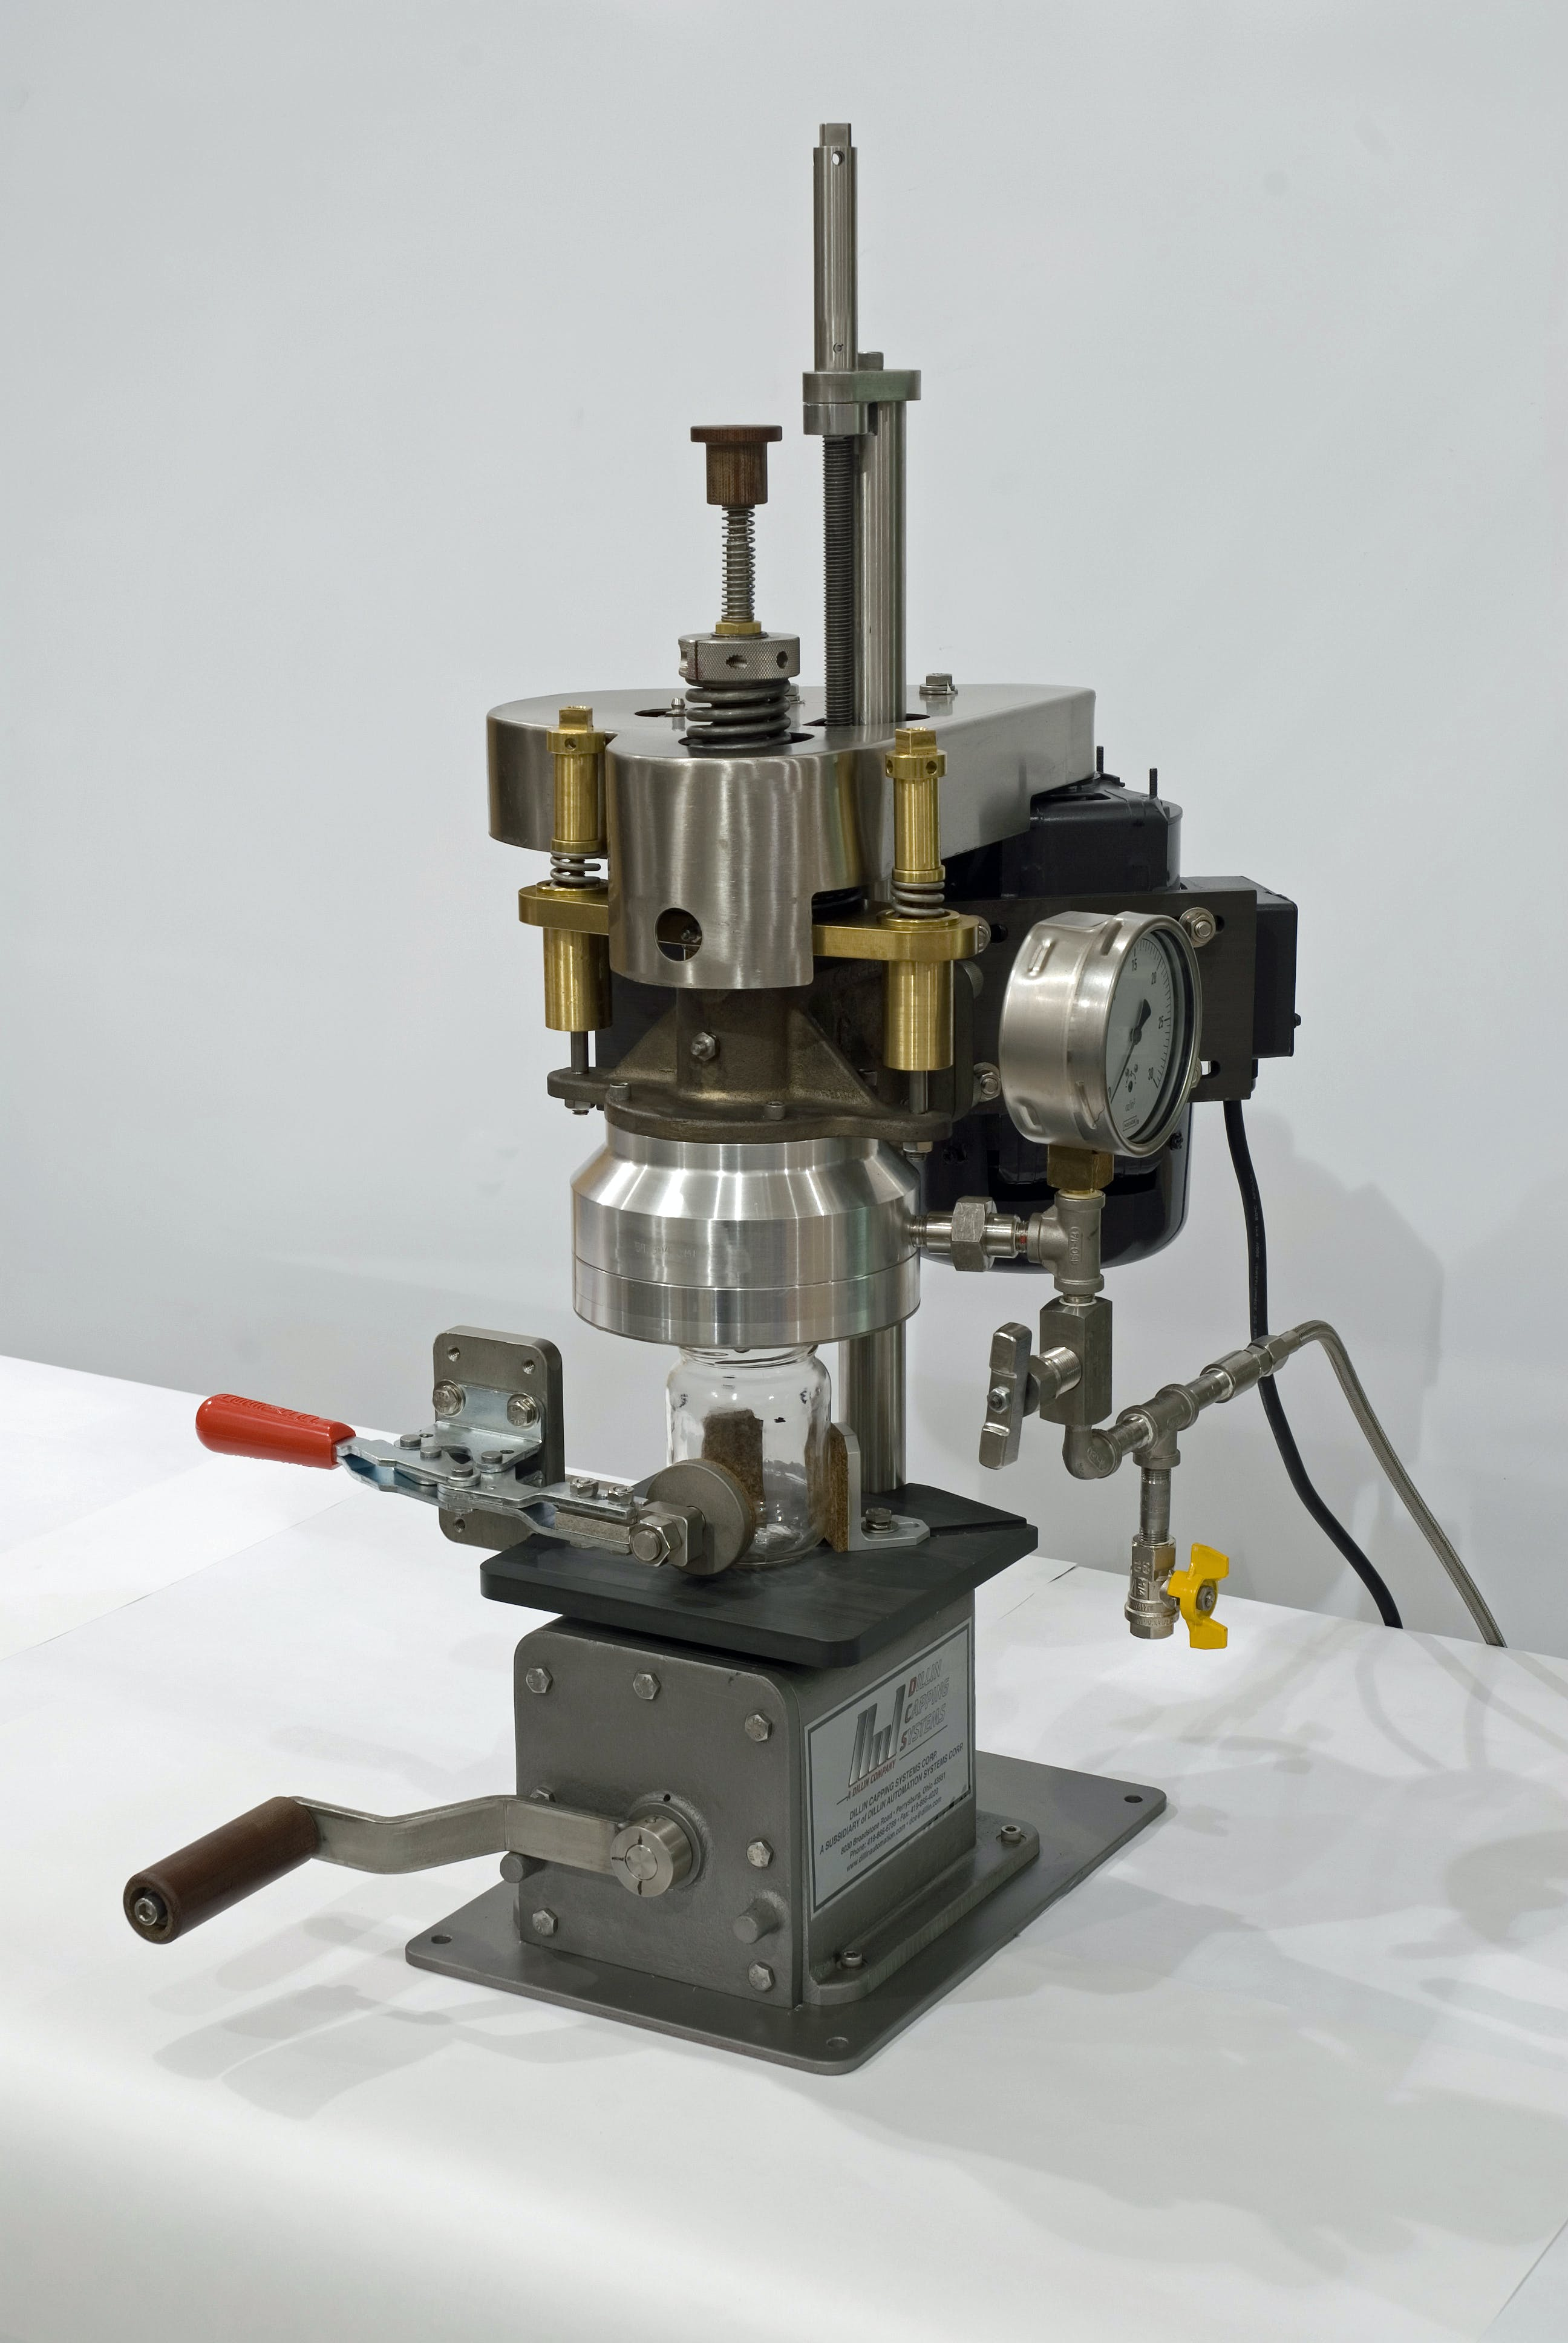 59-Series Single Head Steam Capper Bottle capper sold by Dillin Automation Systems